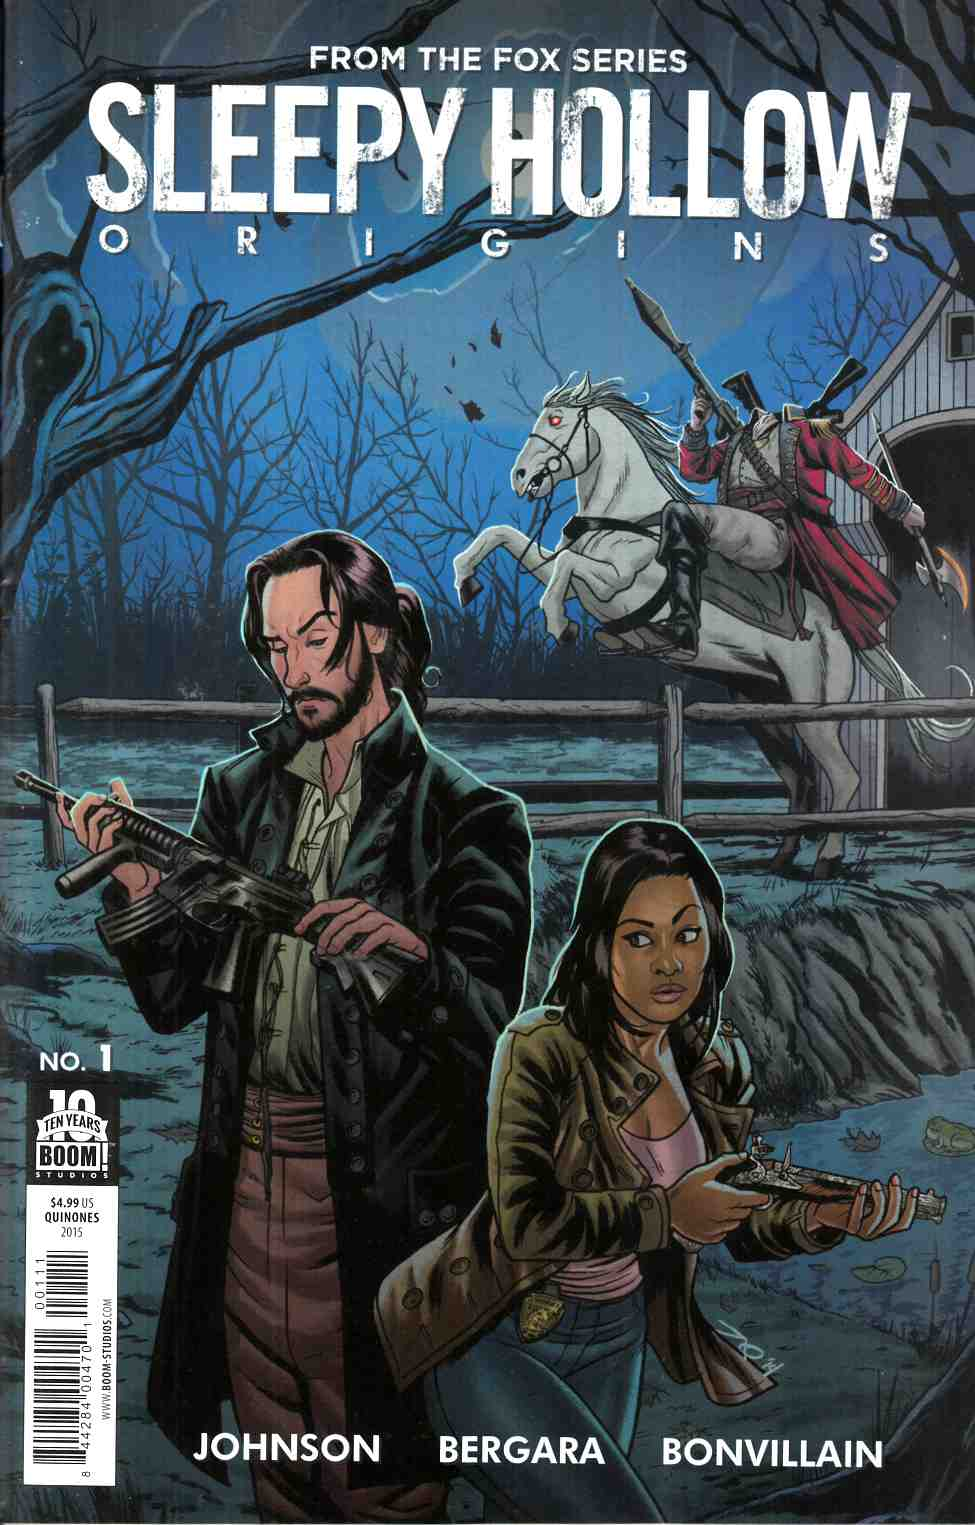 Sleepy Hollow Origins #1 [Bom Comic]